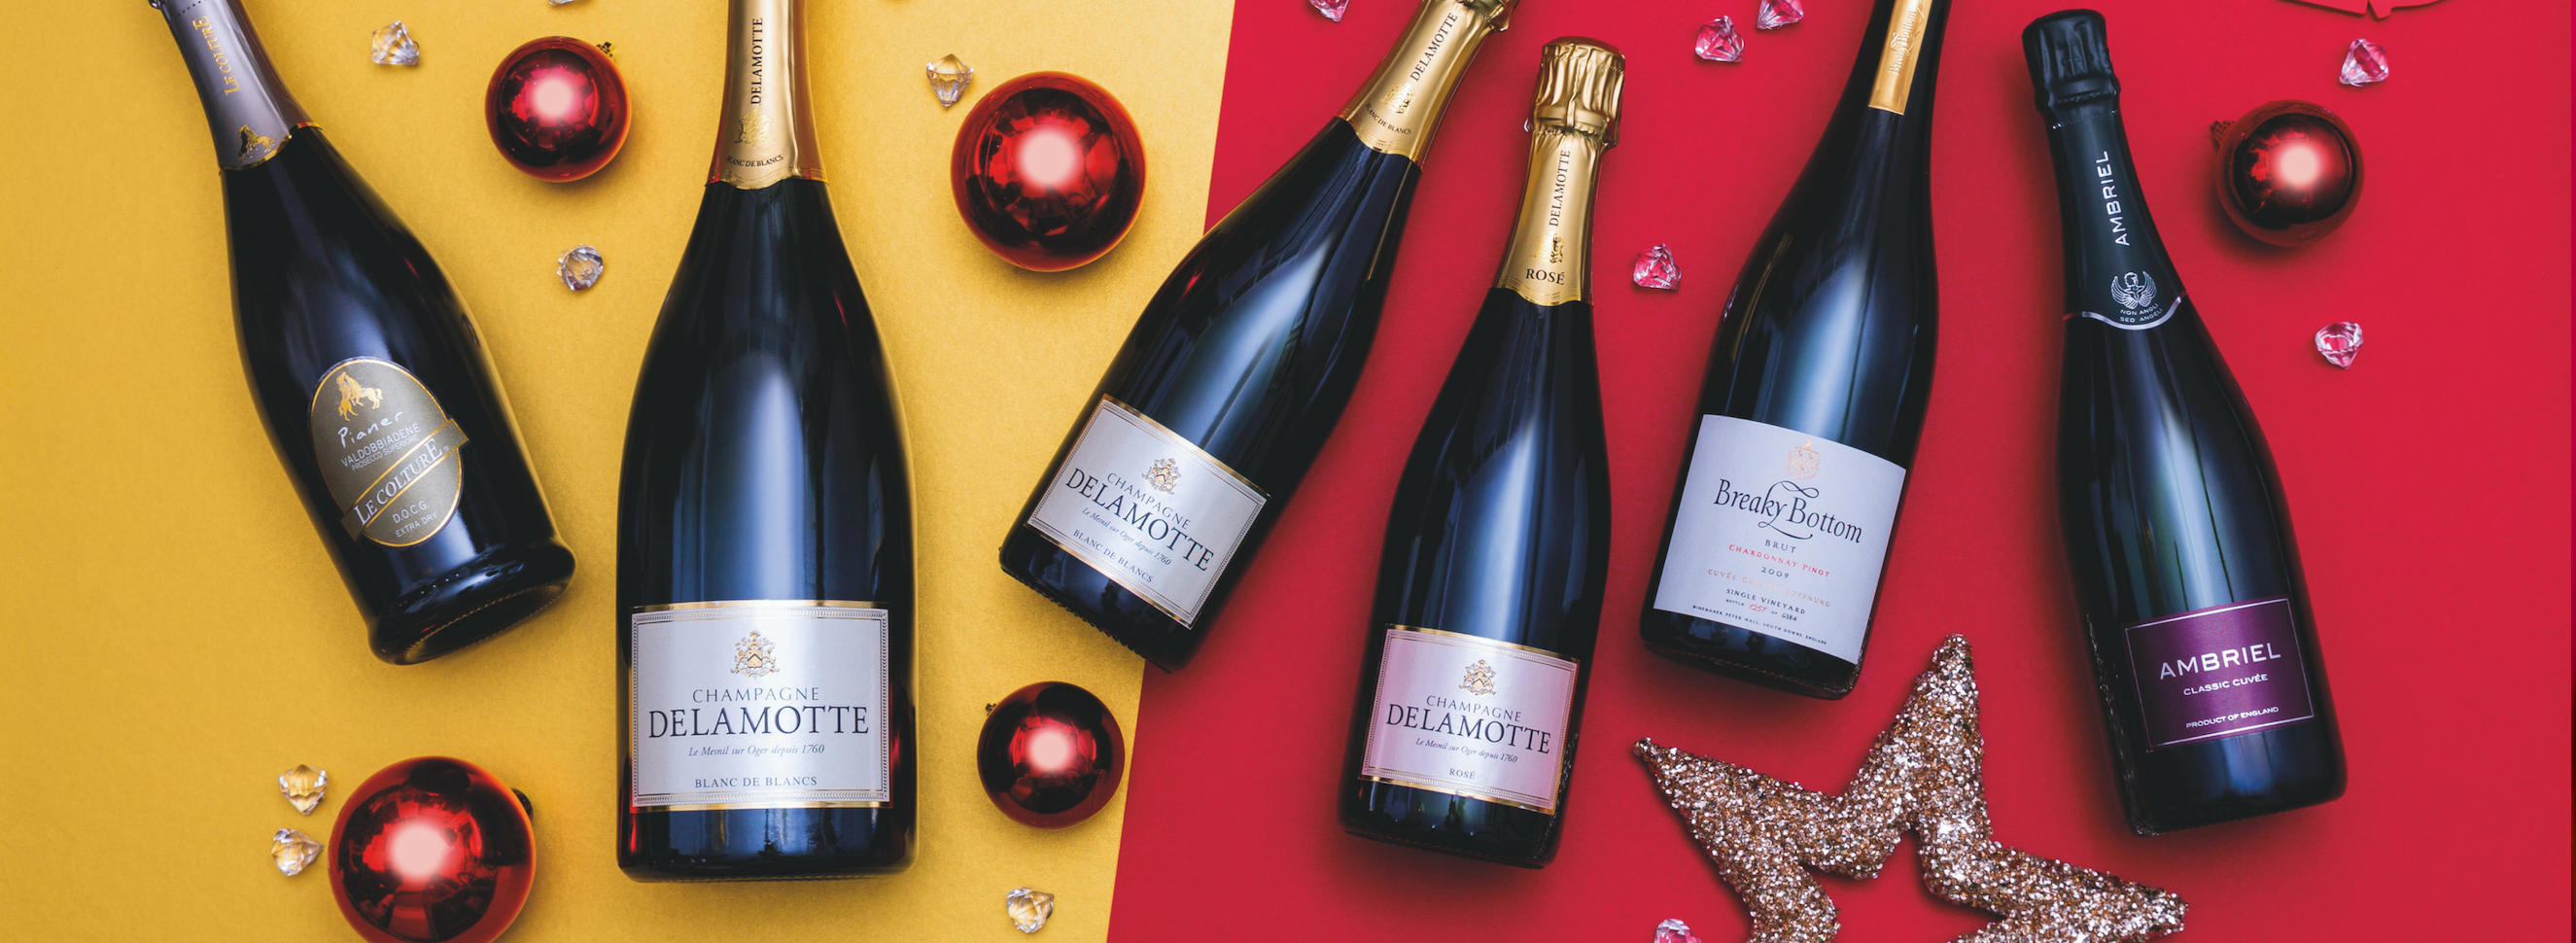 Celebrate with sparkling